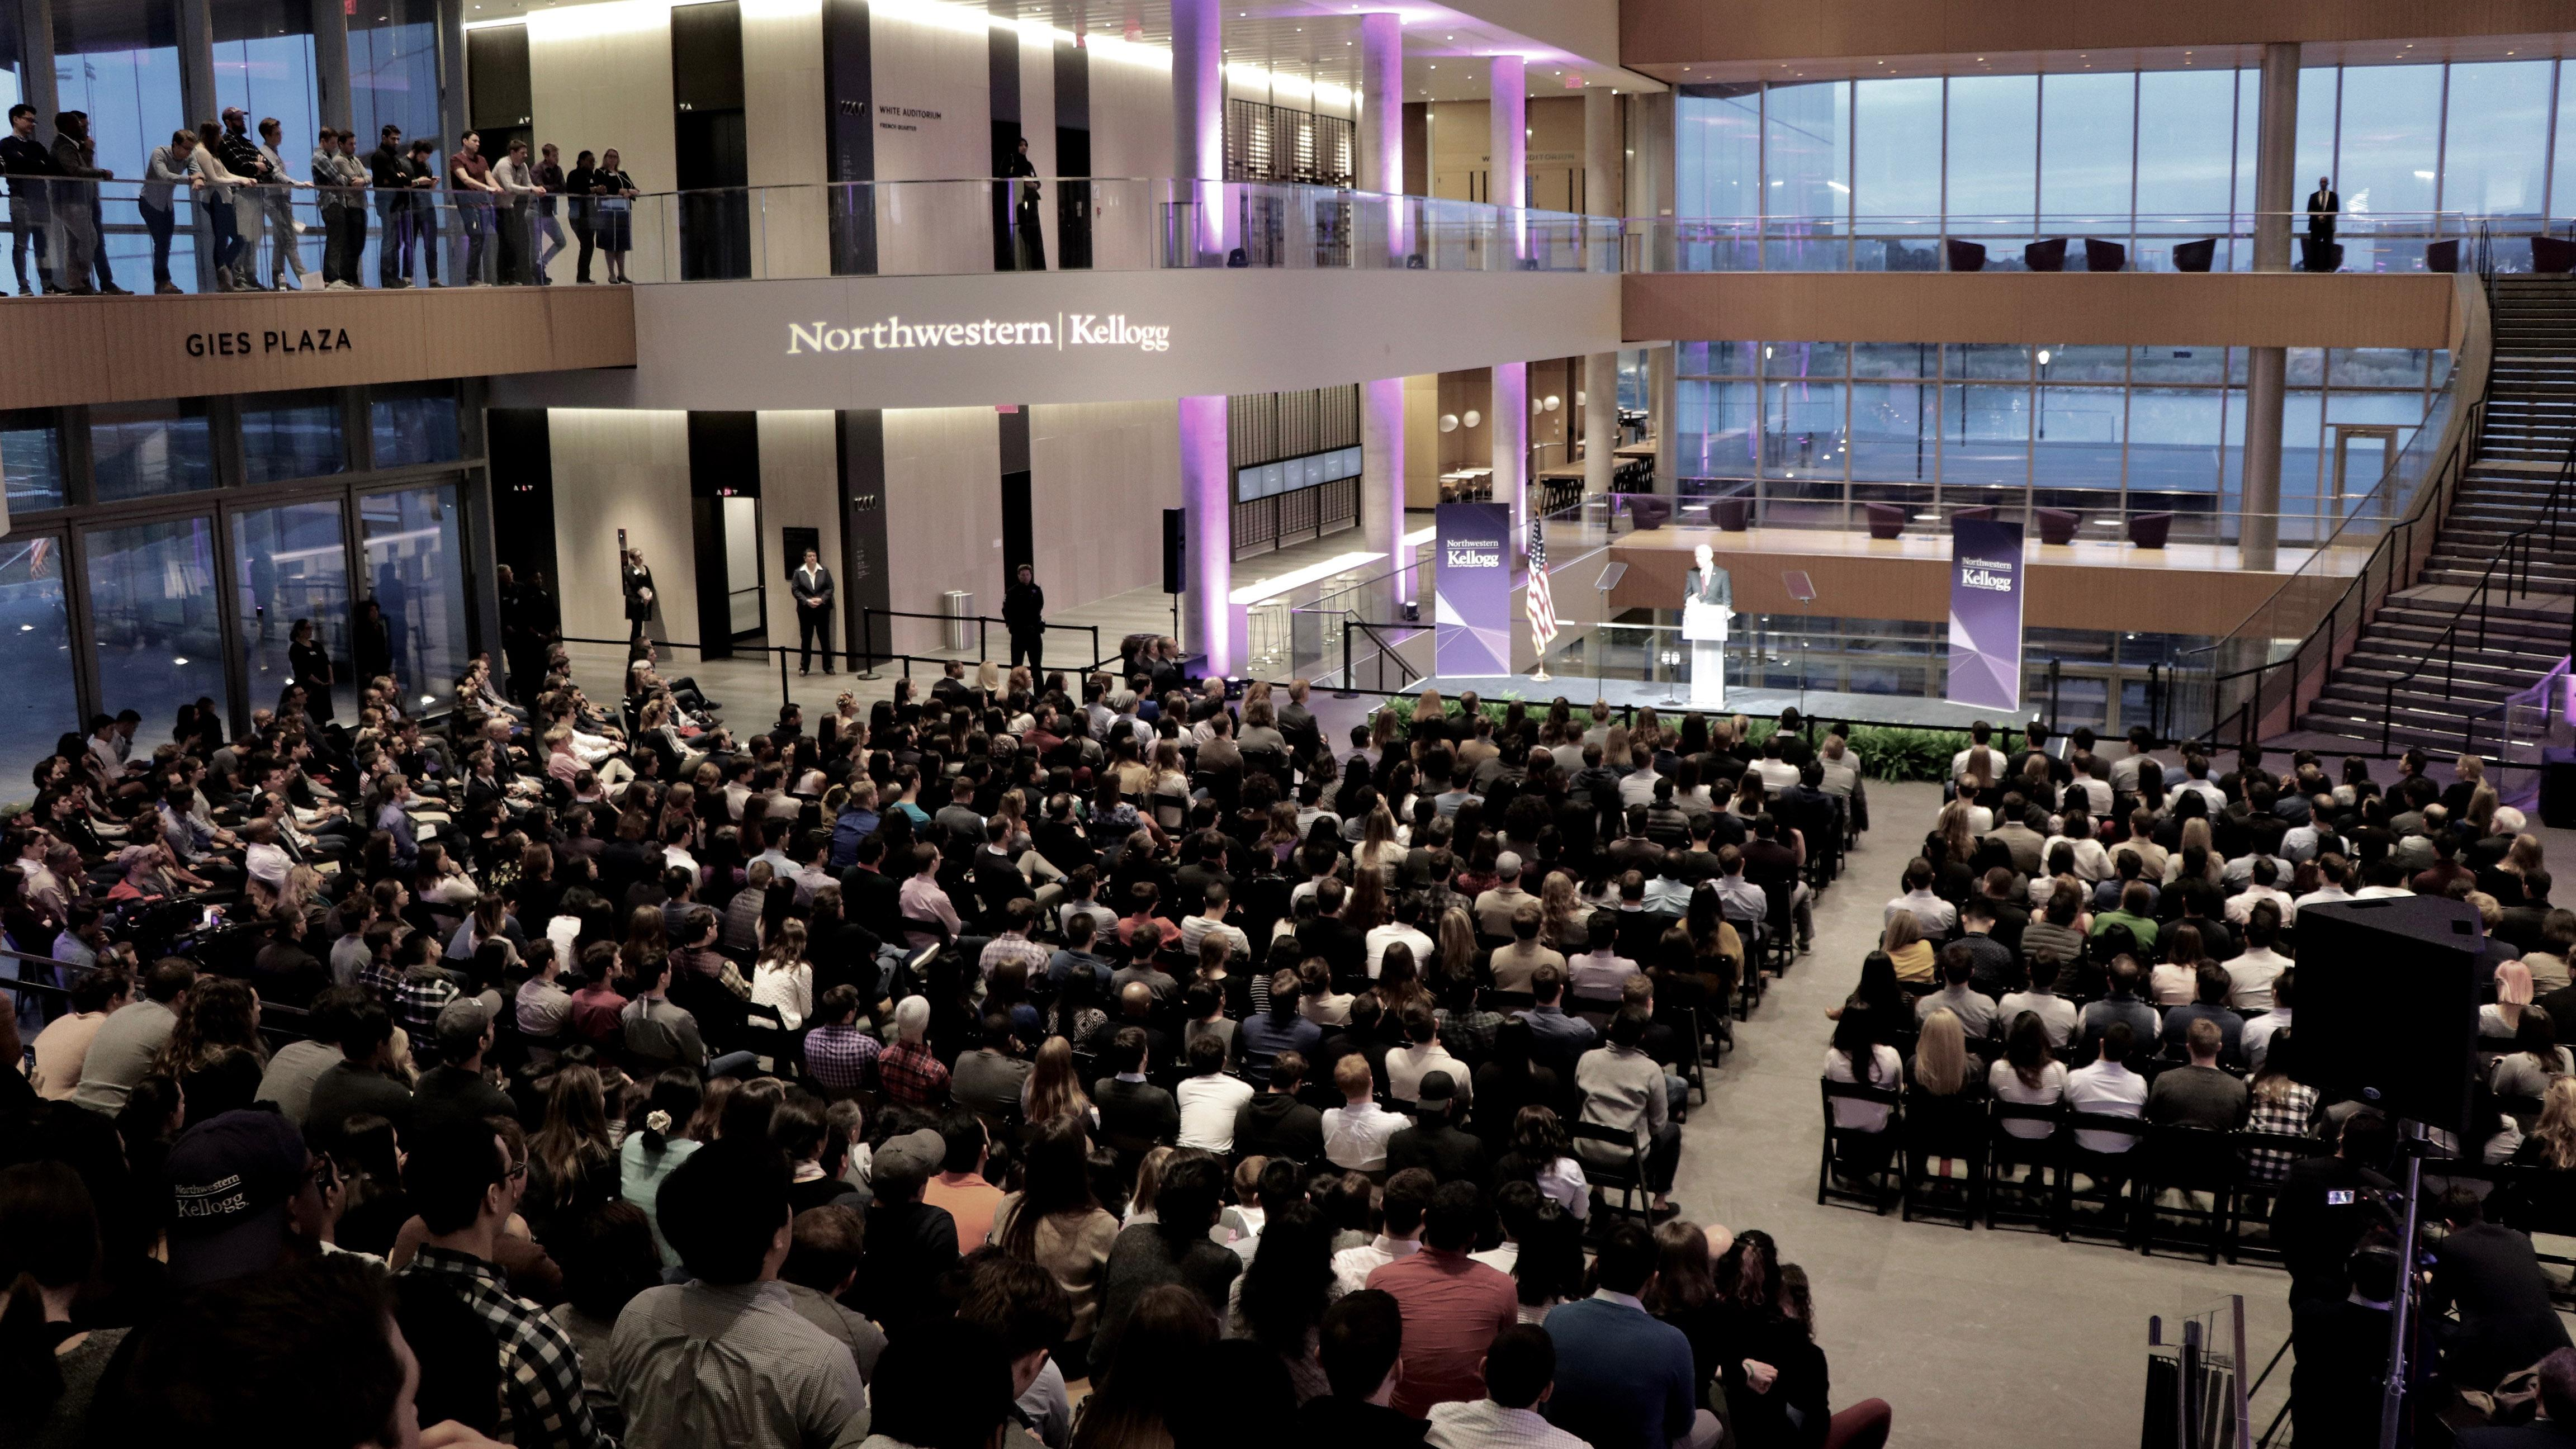 A sold-out crowd gathers at Northwestern's Kellogg Global Hub to hear former Vice President Joe Biden speak. (Evan Garcia / Chicago Tonight)